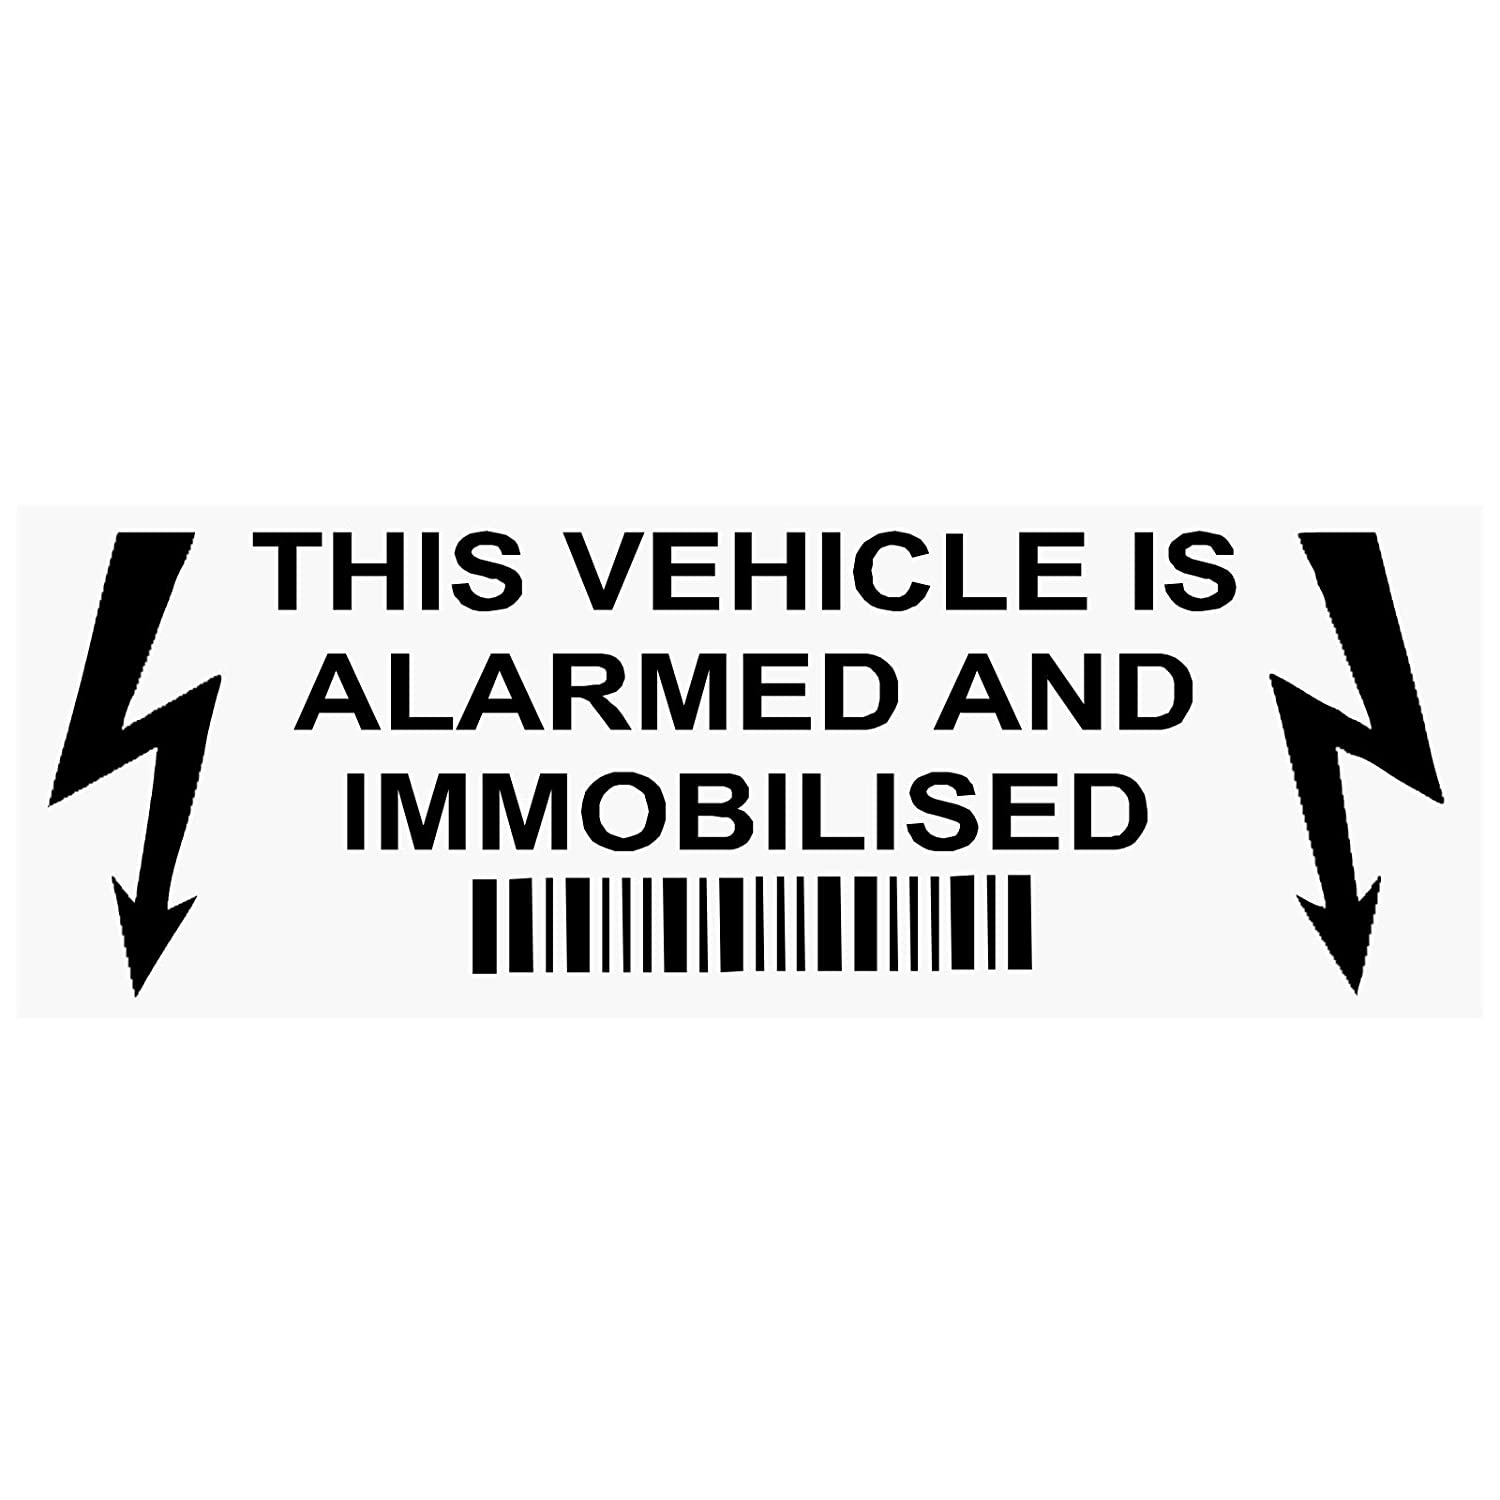 5 x Alarm and Immobiliser Fitted Stickers-BLACK-30mmx87mm-LIGHTNING DESIGN-Alarmed and Immobilised Security Warning Window Signs-Car, Van, Truck, Caravan, Motorhome, Lorry, Taxi, Minicab, Automobile Platinum Place